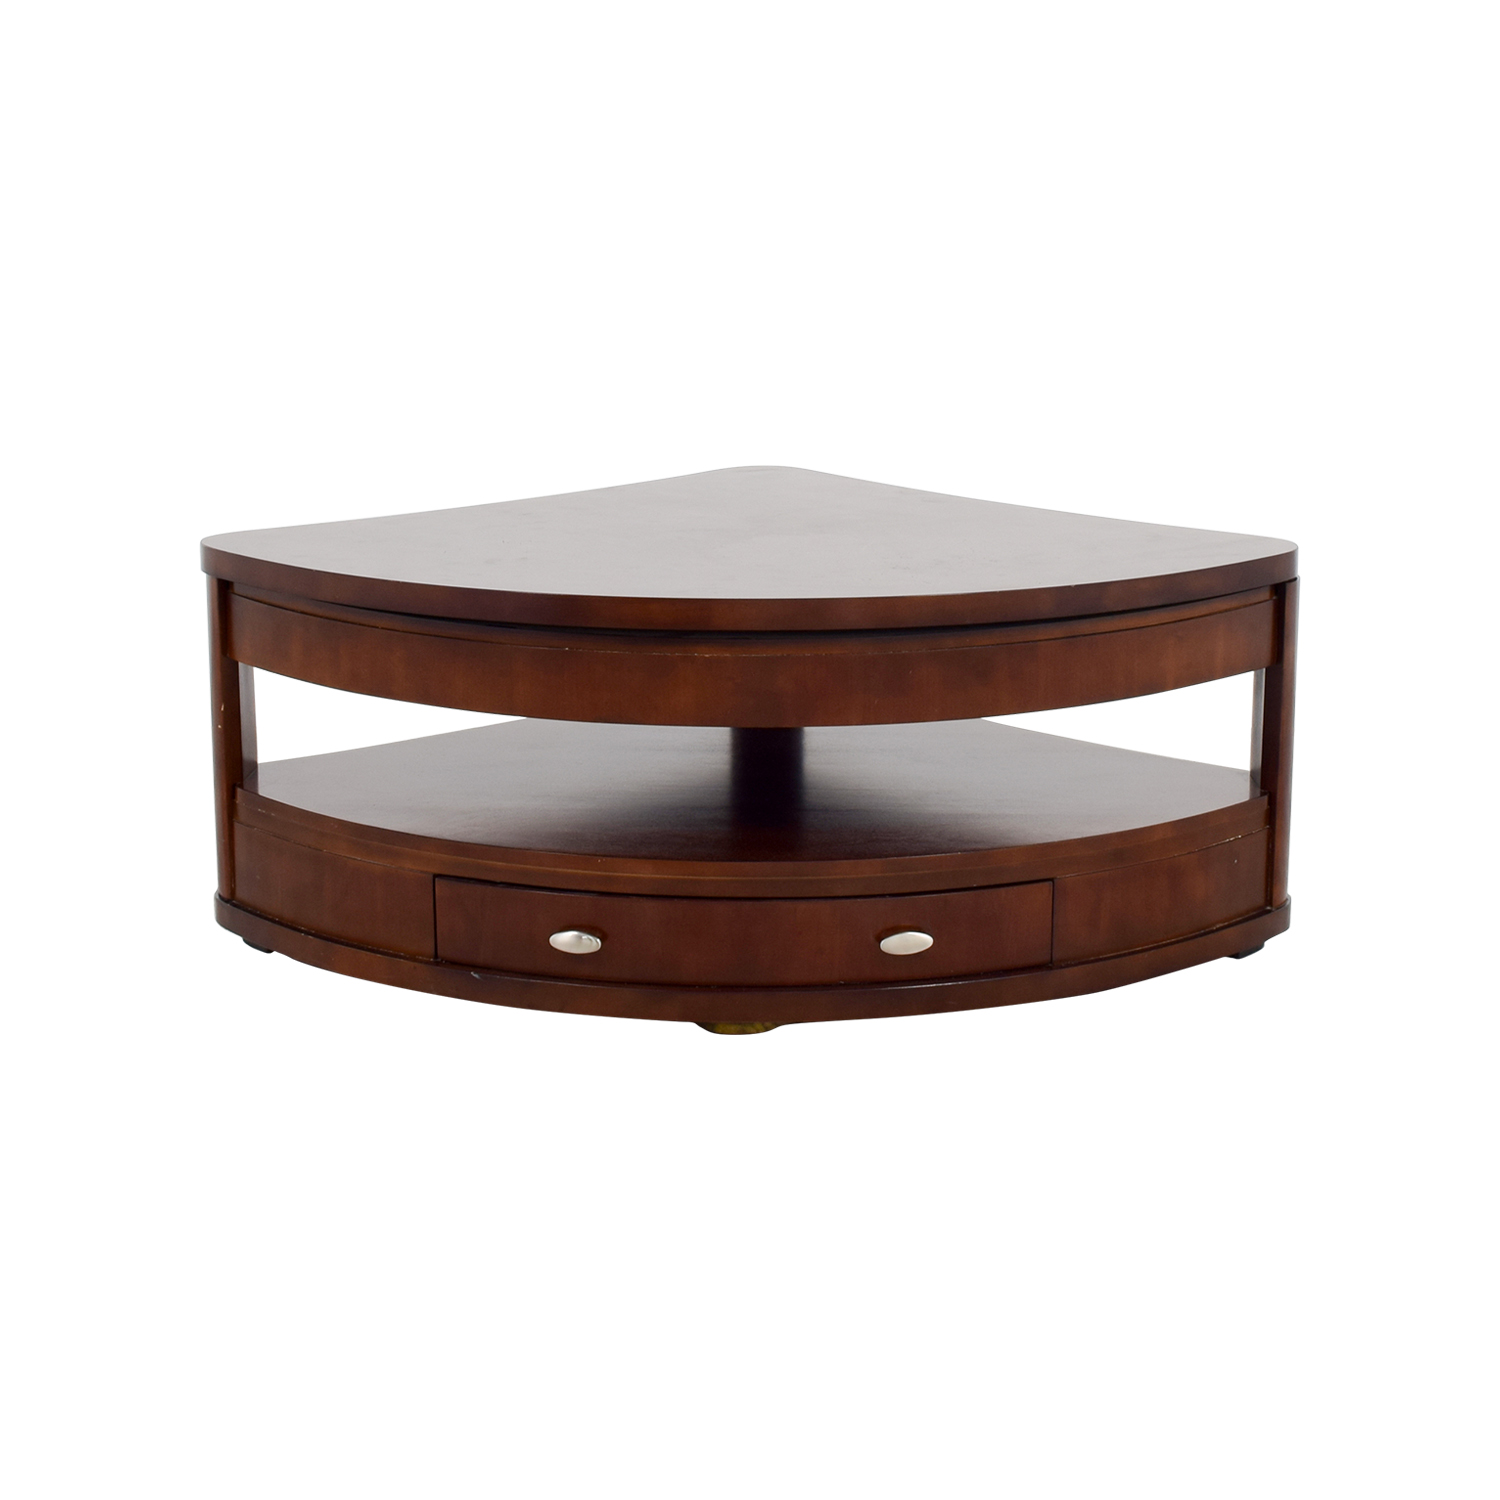 buy Triangular Rounded Lift-top Coffee Table Coffee Tables